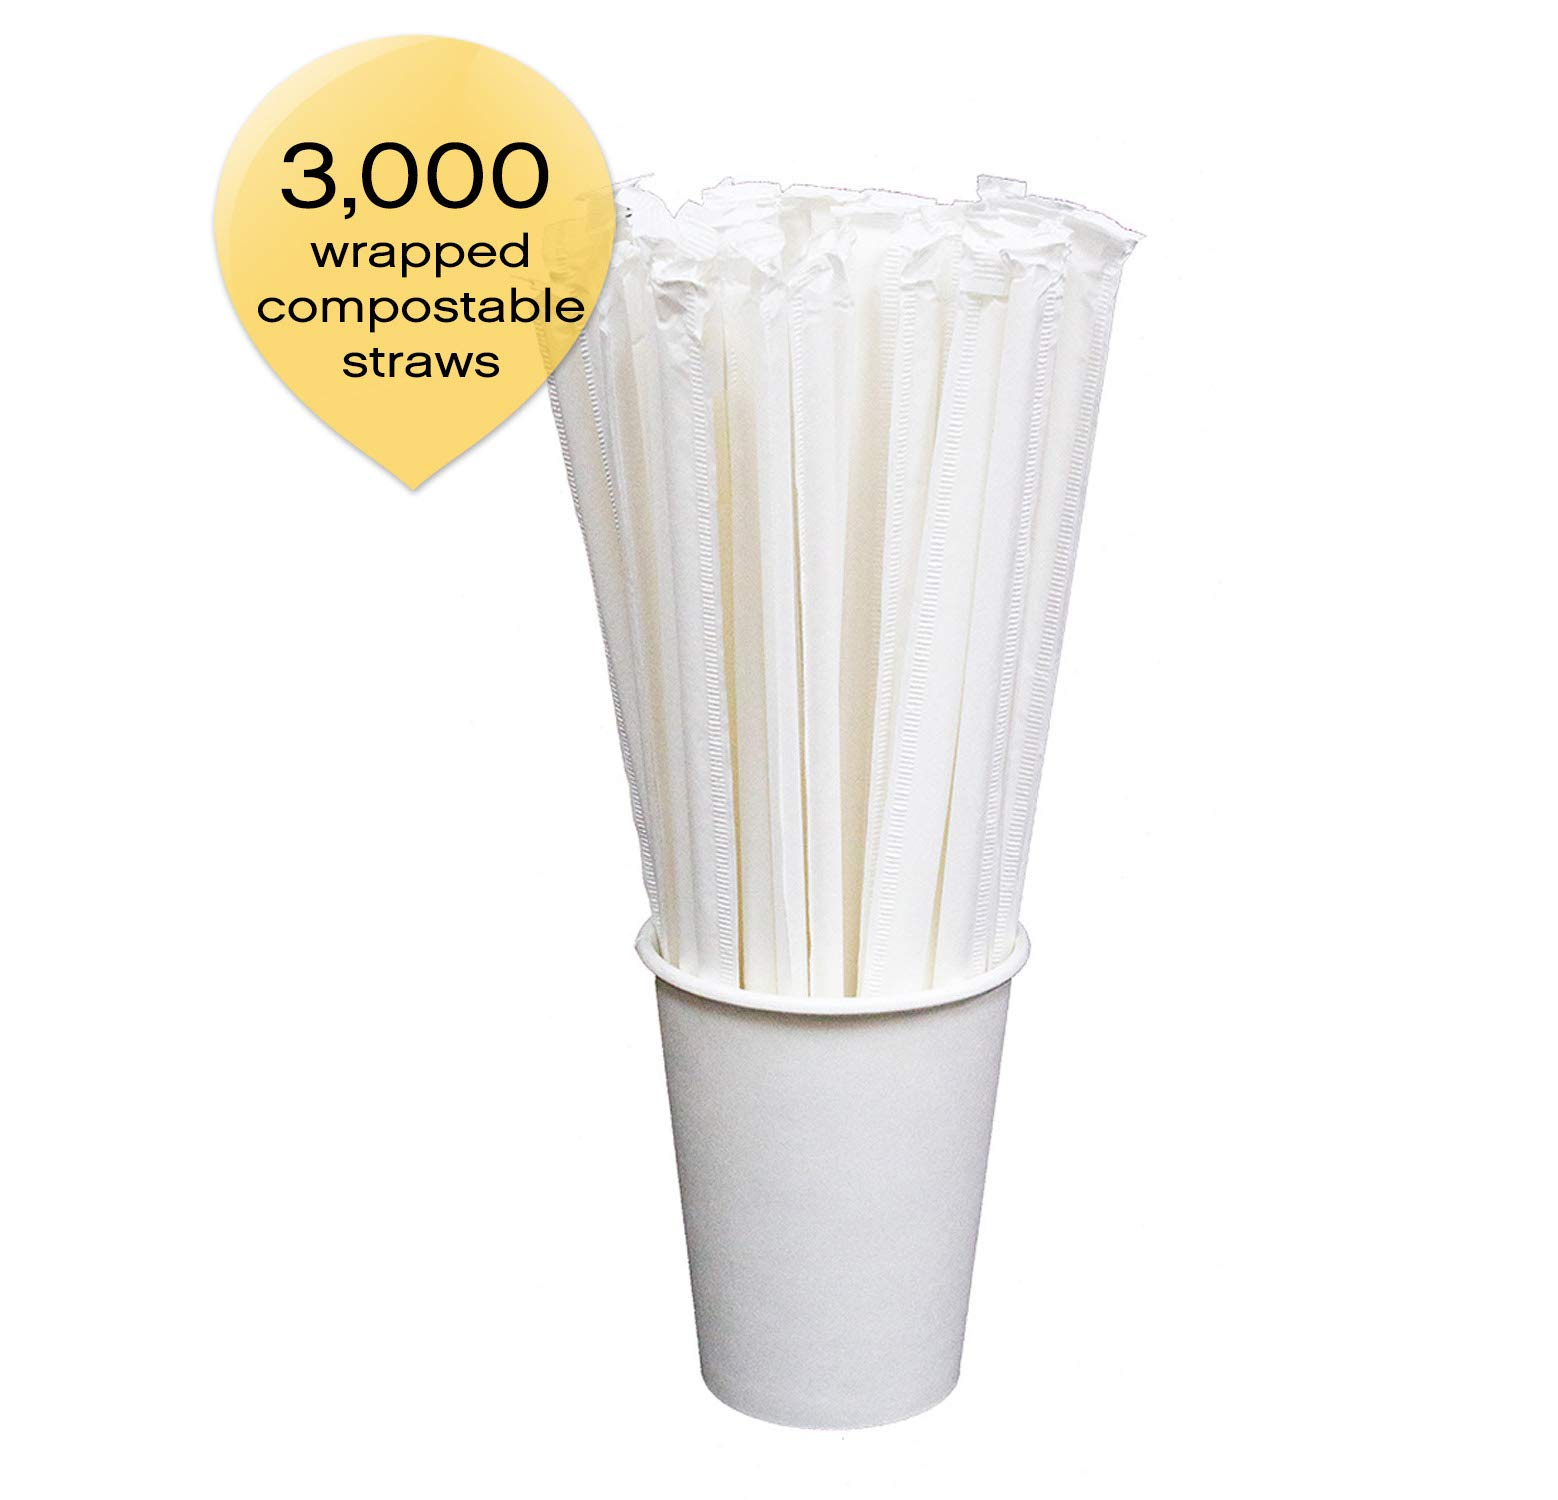 Sophistiplate Foodservice Box Of 3000 White-Wrapped Compostable Paper Drinking Straws 7.75'' X .228'' Diameter, Durable And Eco-Friendly Bulk Paper Straws